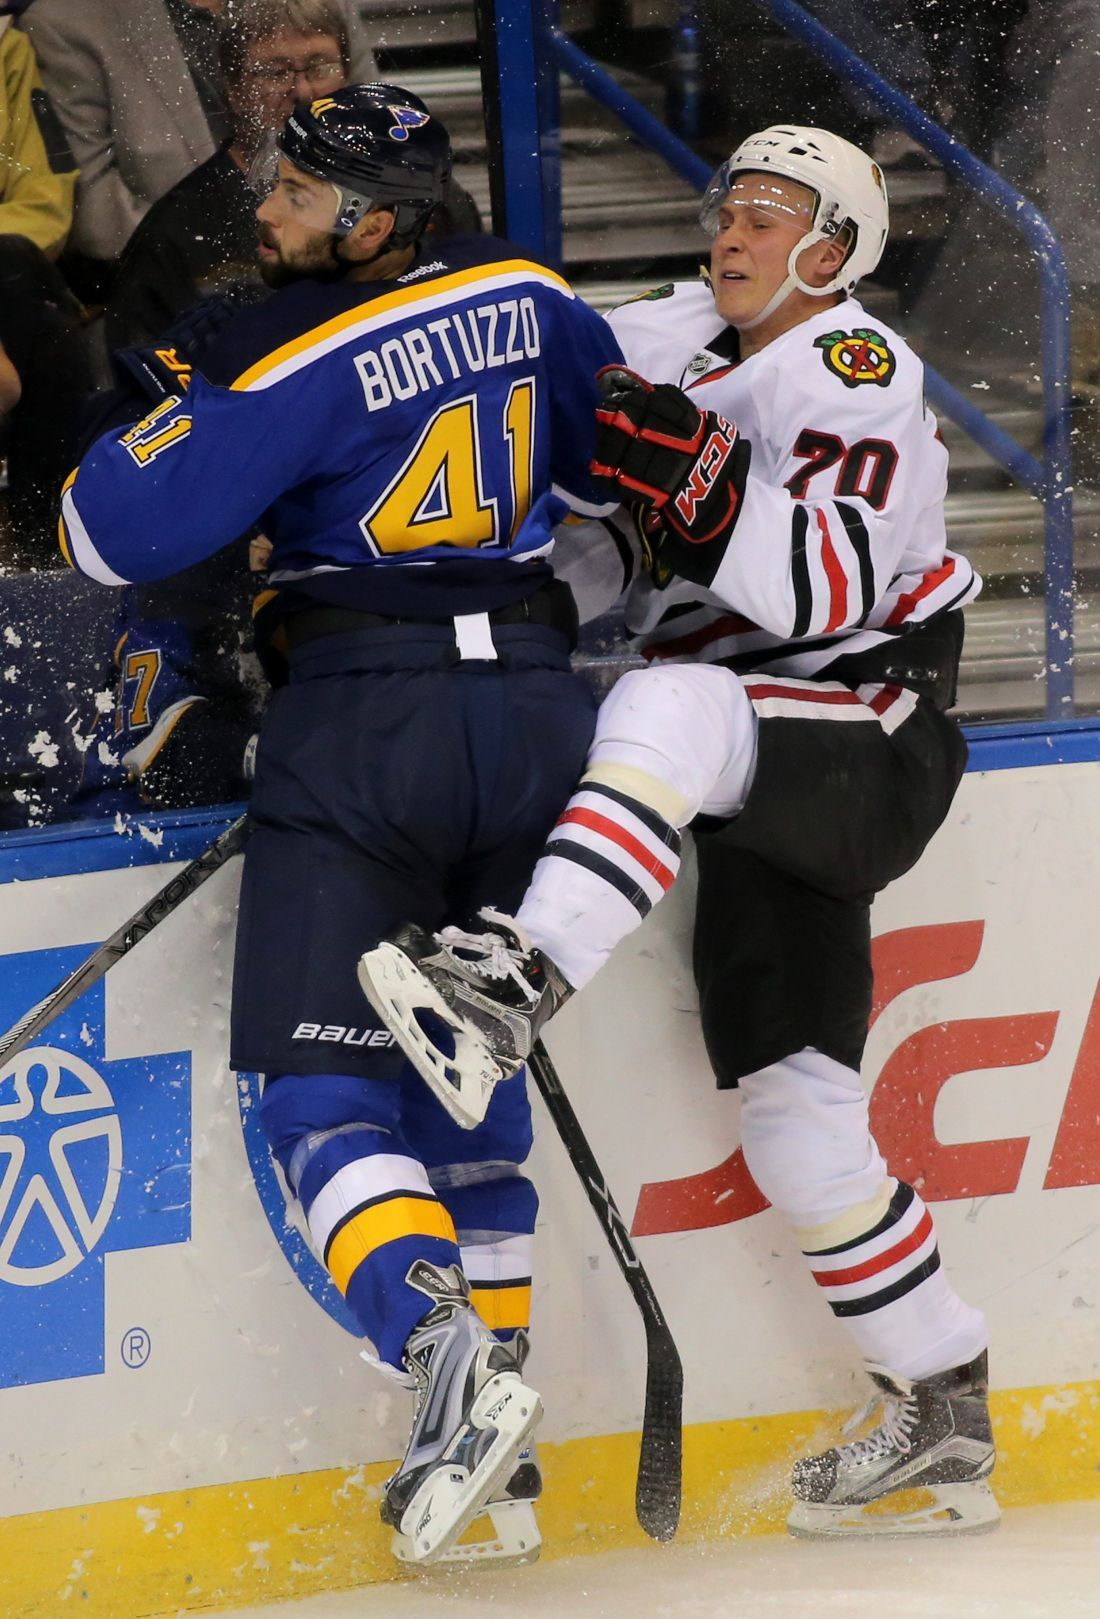 Blues get Bouwmeester back, lose Bortuzzo